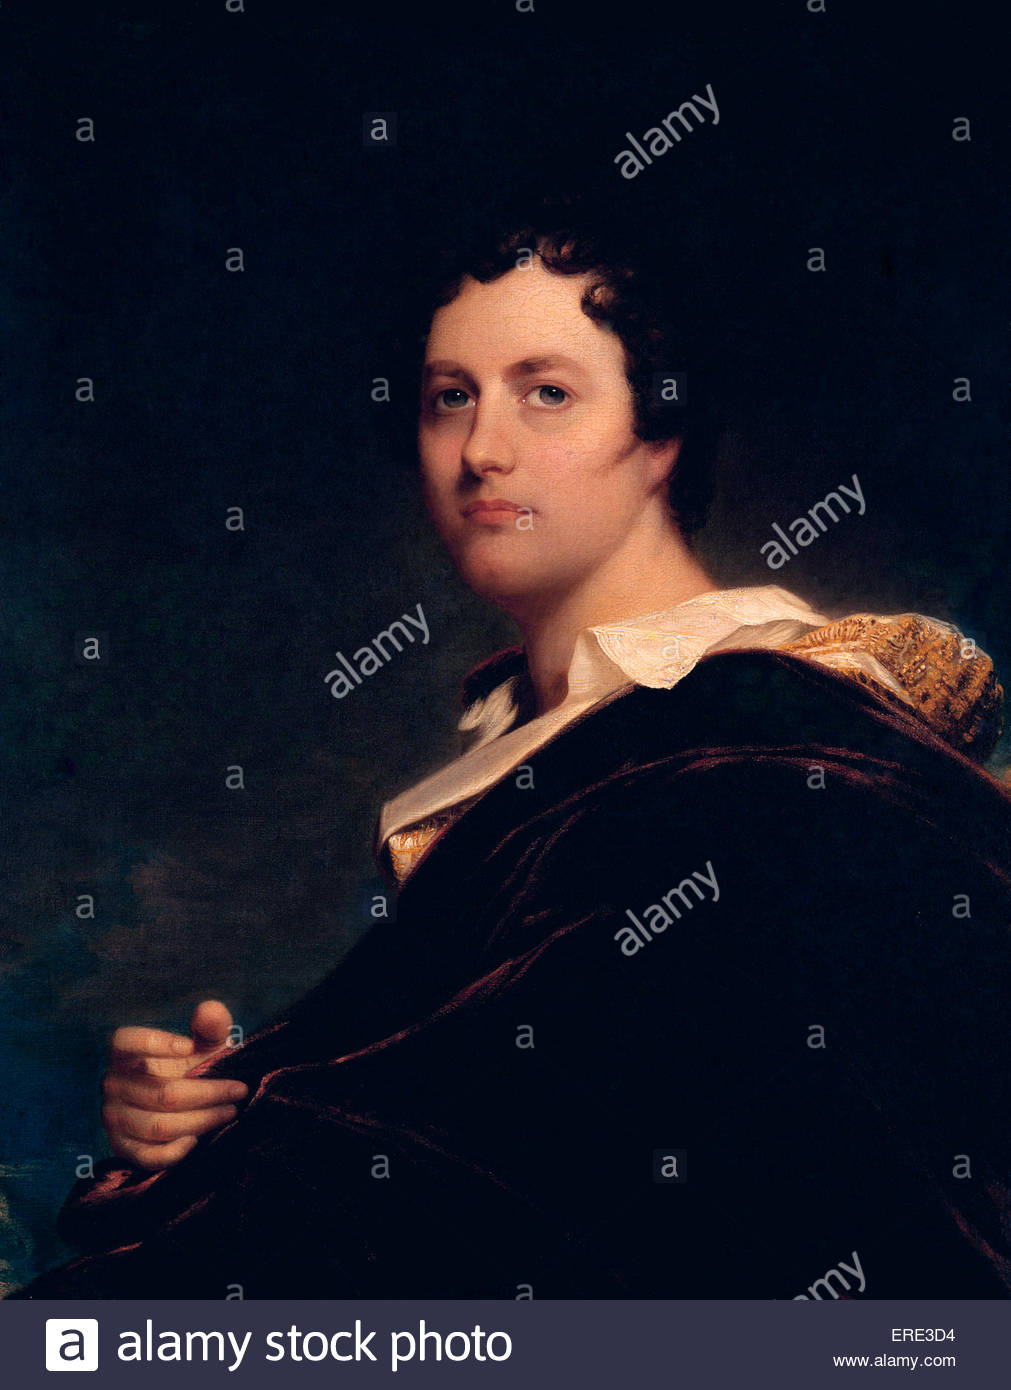 Lord Byron, óleo de William Edward West, 1822. George Gordon Byron, sexto Lord Byron de Rochdale, poeta británico: Imagen De Stock